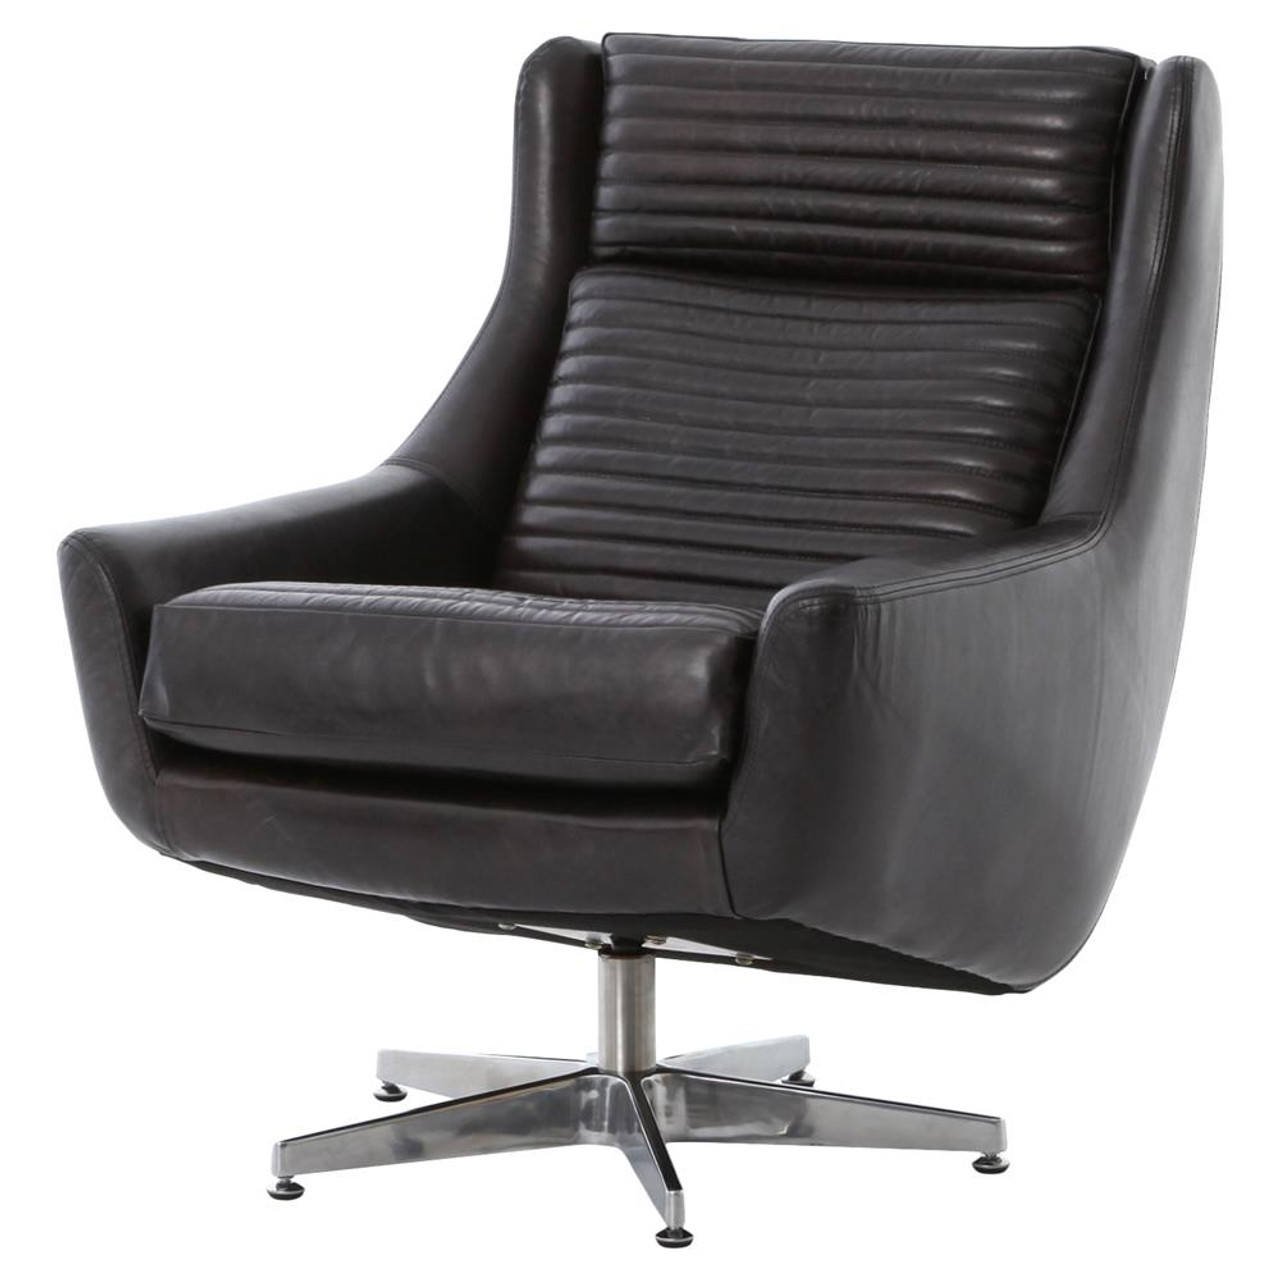 Genial Charles Retro Black Leather Swivel Chair